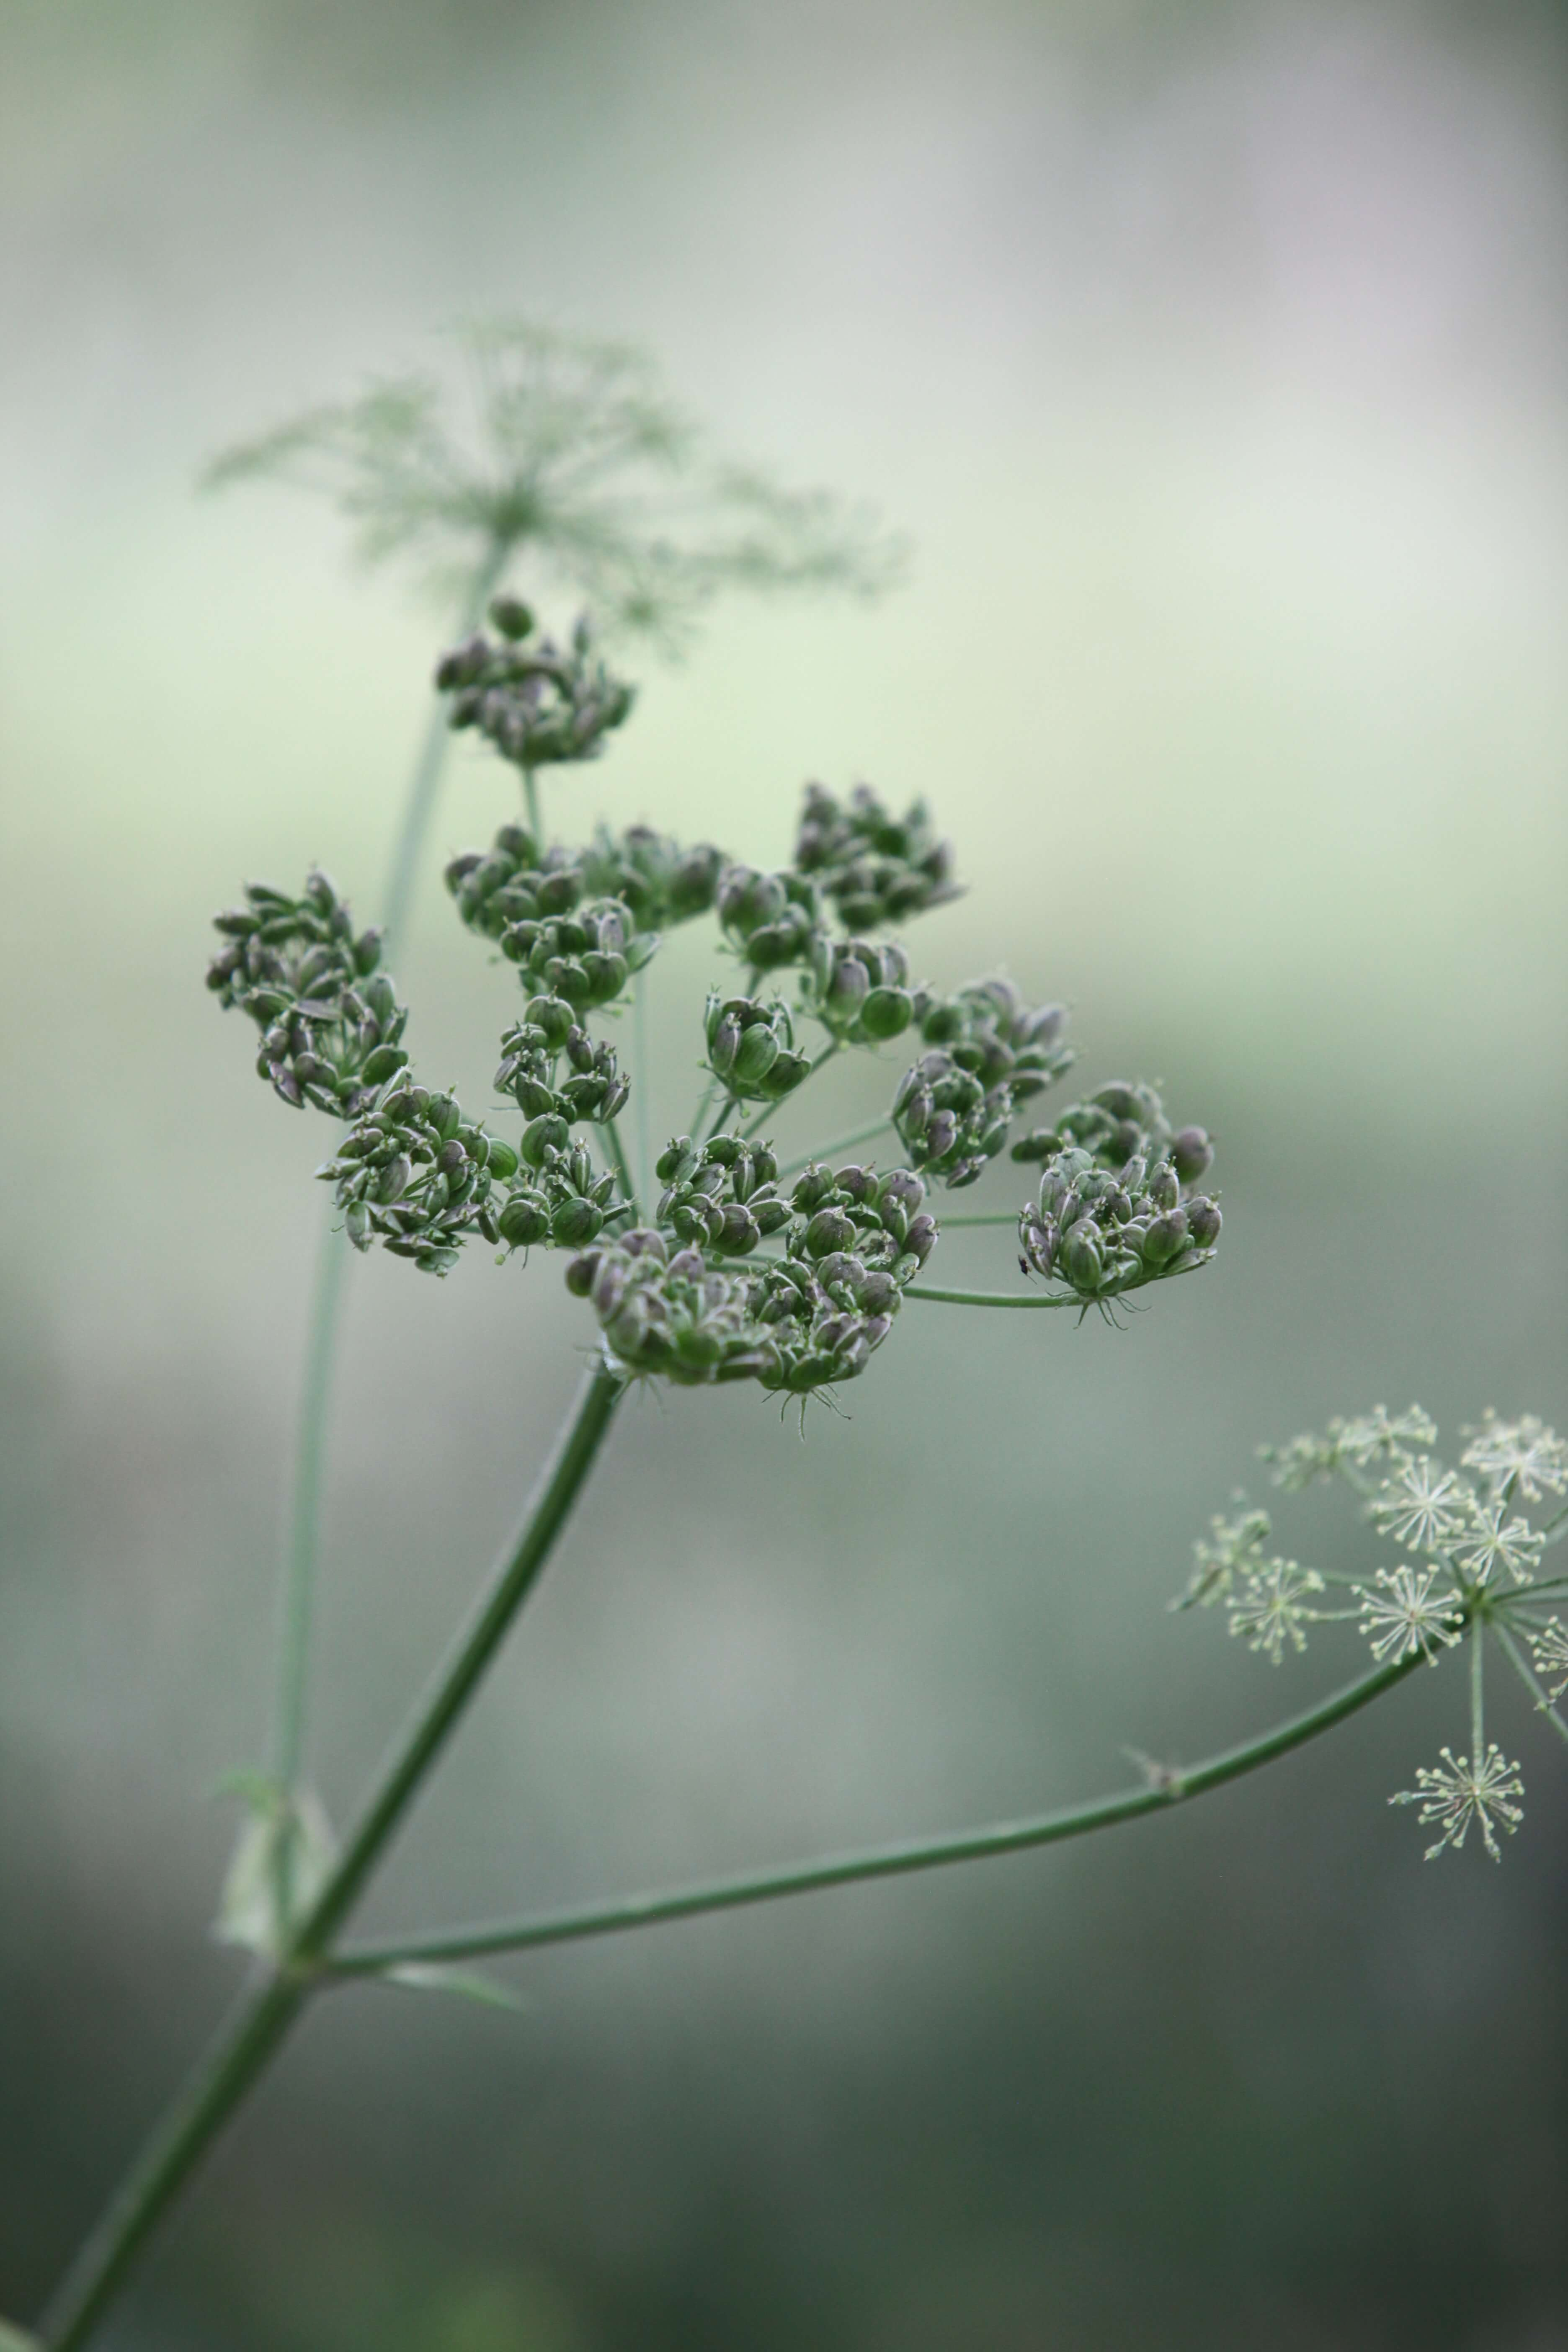 cow-parsley-428720